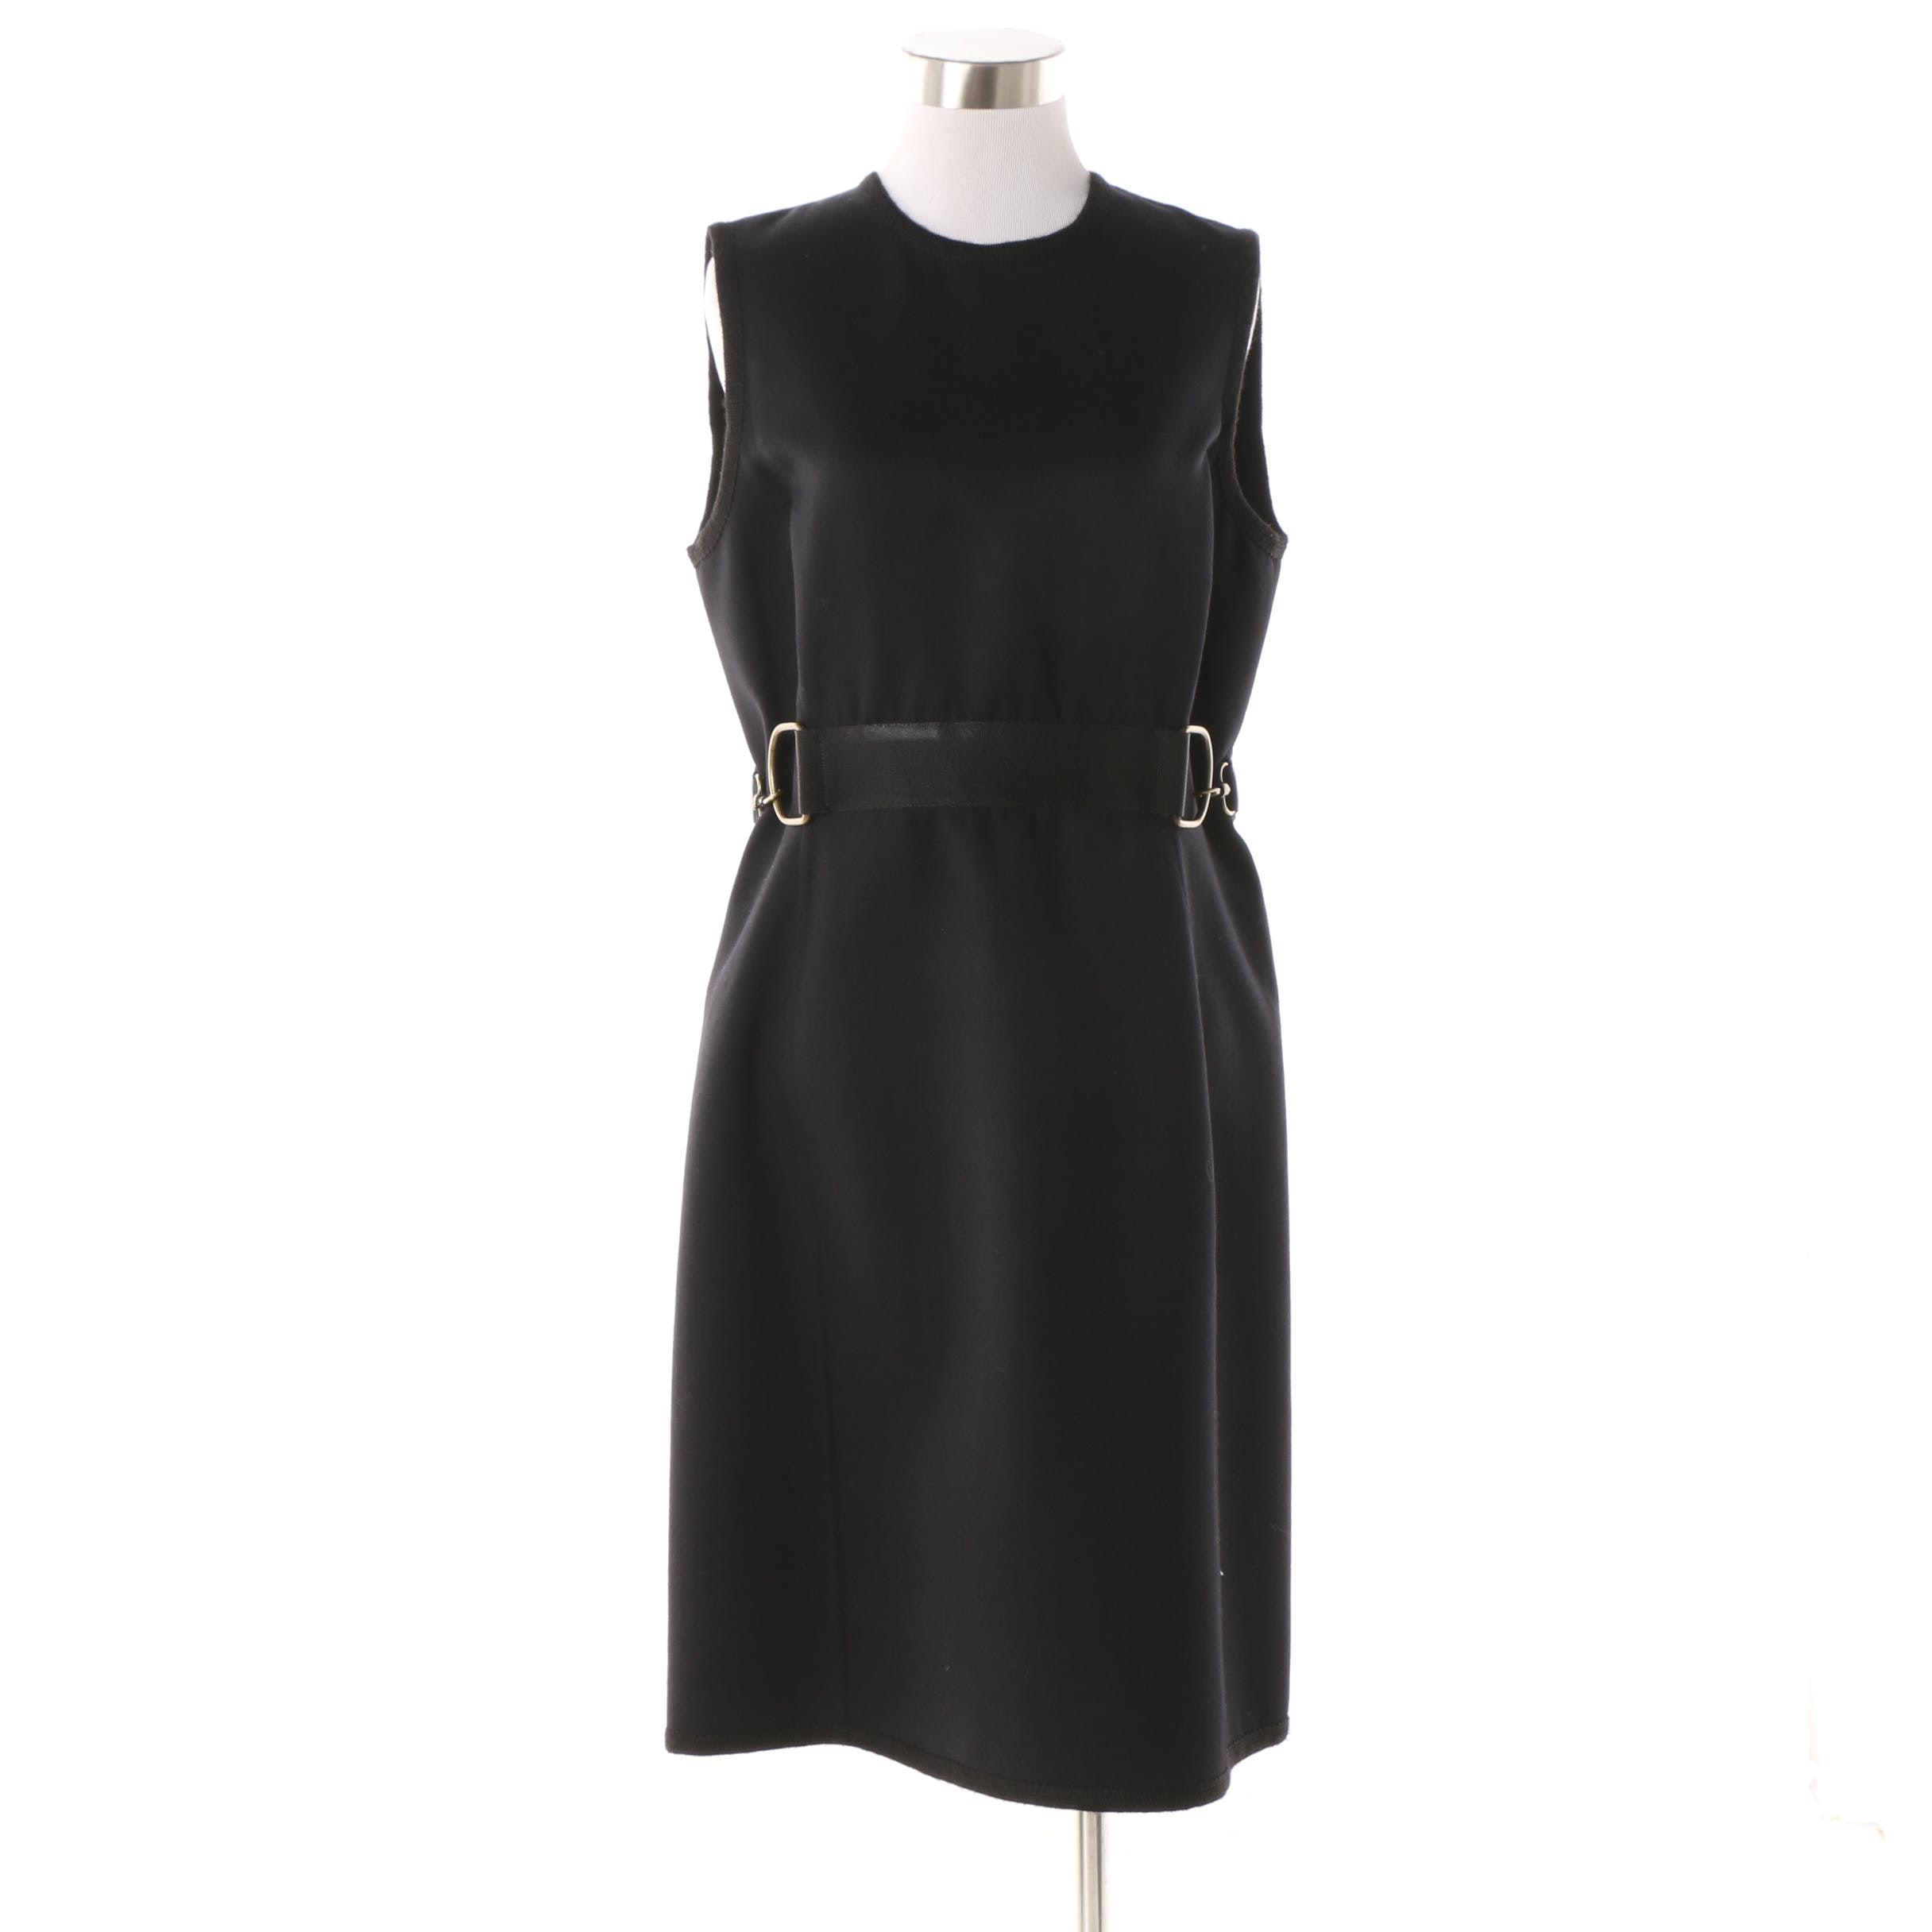 Women's Michael Kors Black Wool Belted Sheath Dress